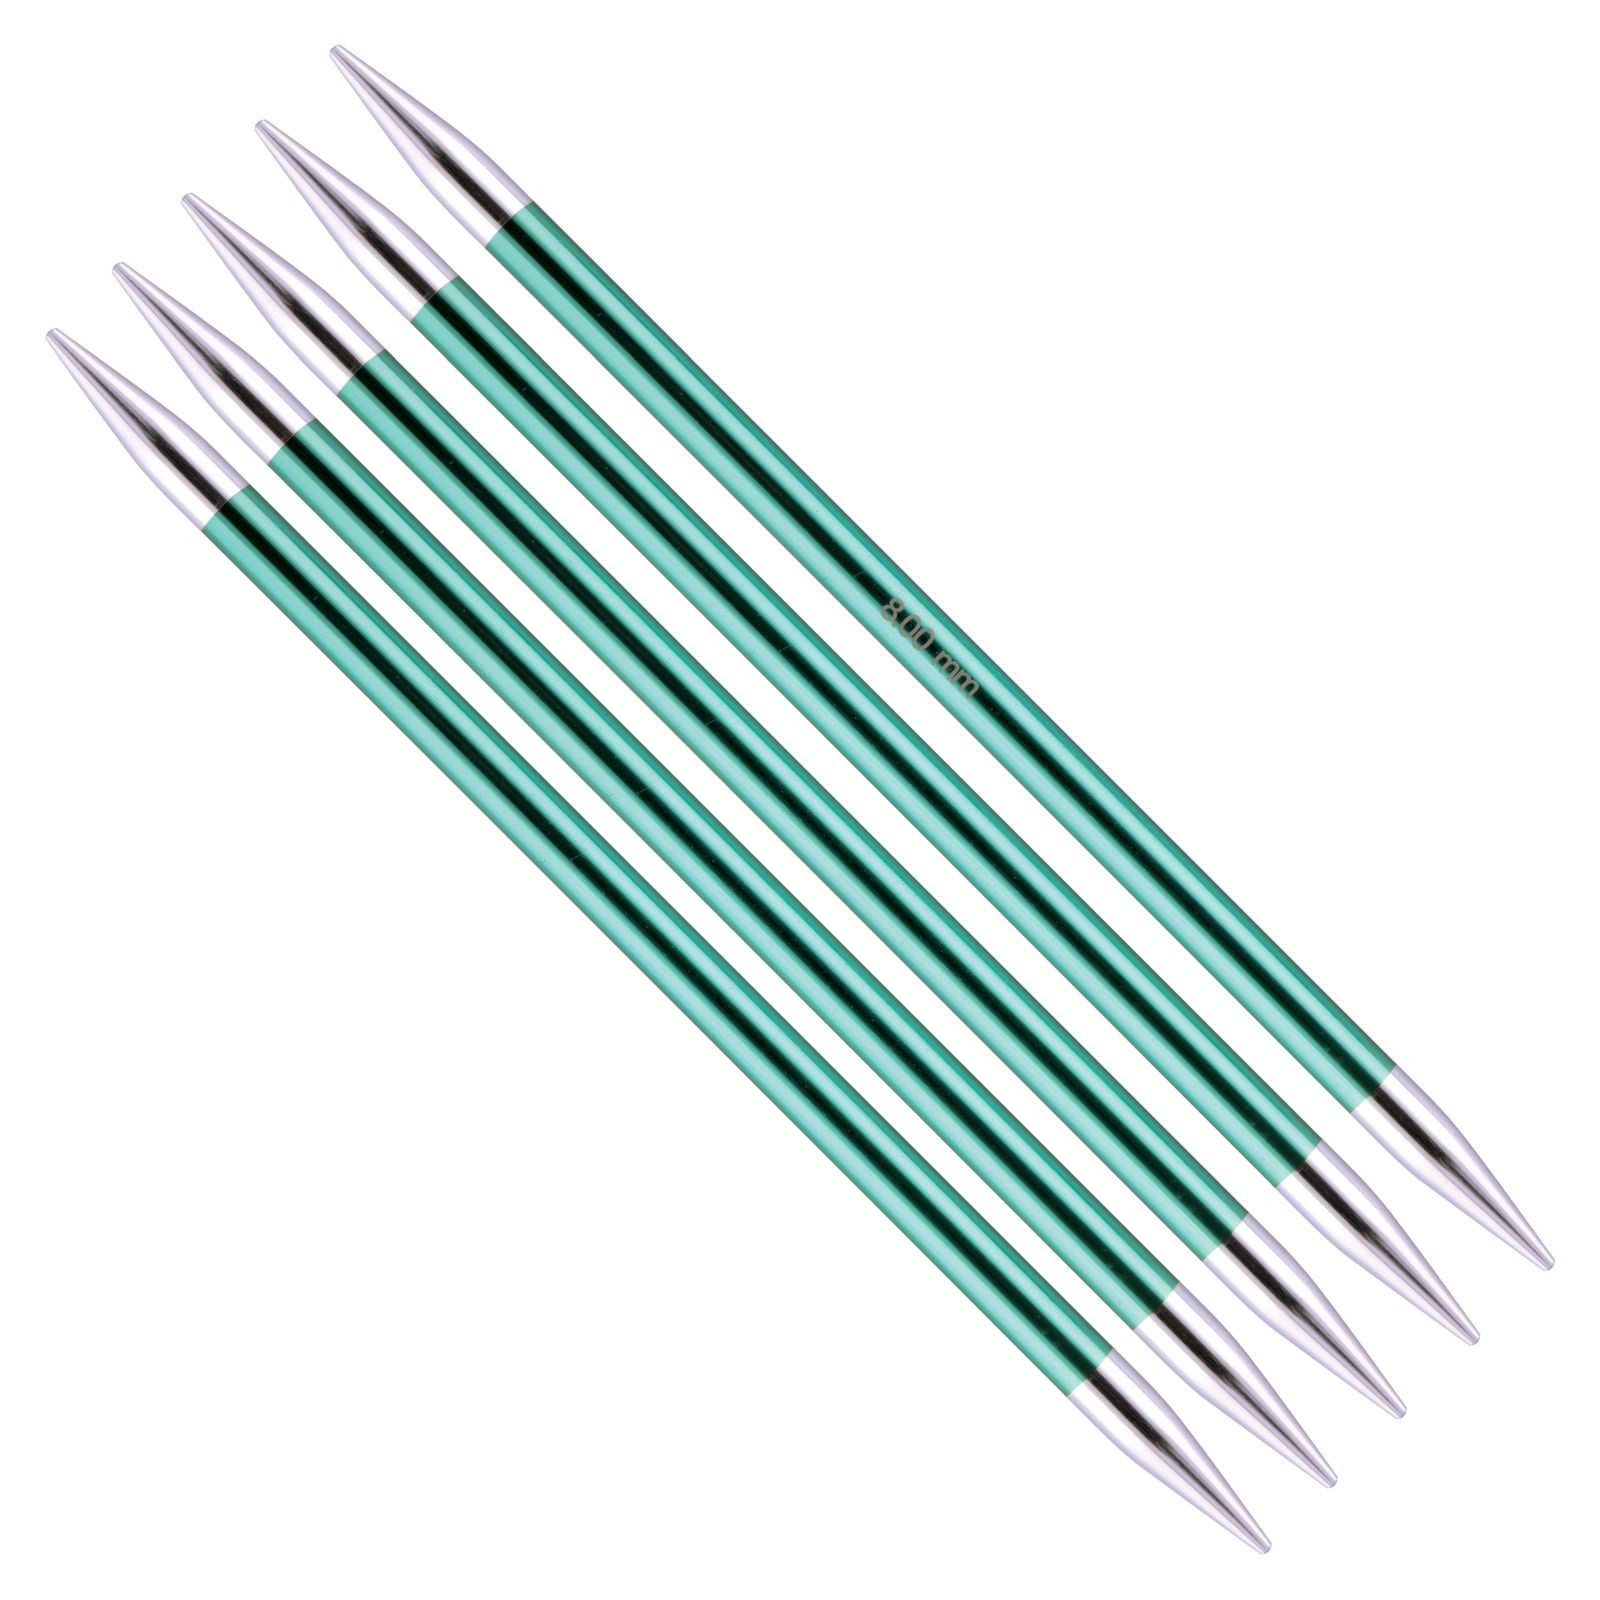 Elegant Knitpro Zing Dpns Double Point Needles Knitting Double Pointed Knitting Needles Of Lovely 40 Ideas Double Pointed Knitting Needles